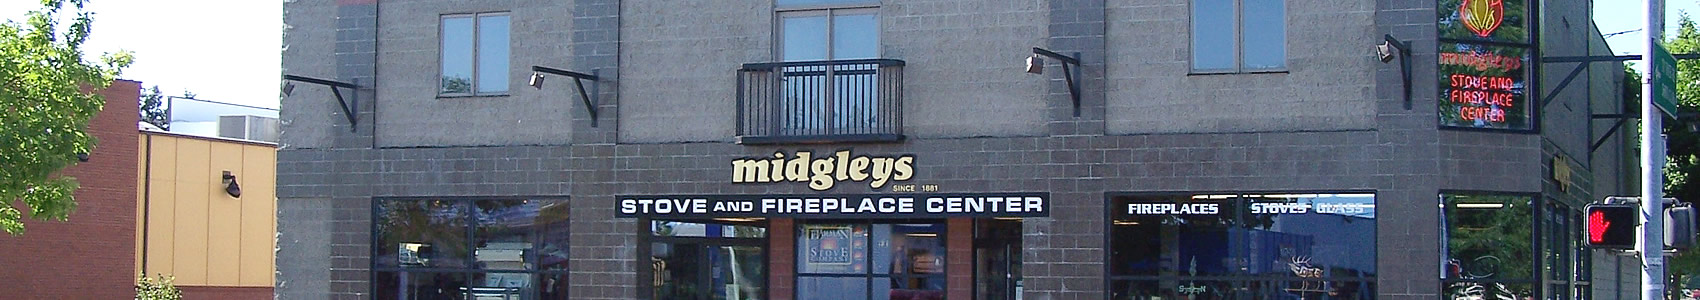 front of midgleys building